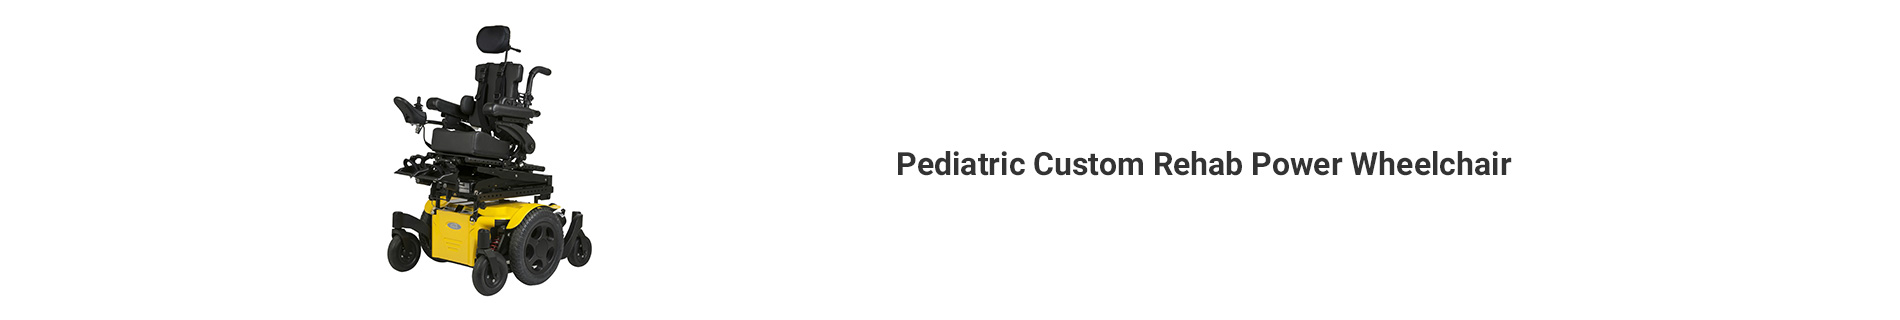 Pediatric Custom Power Wheelchair